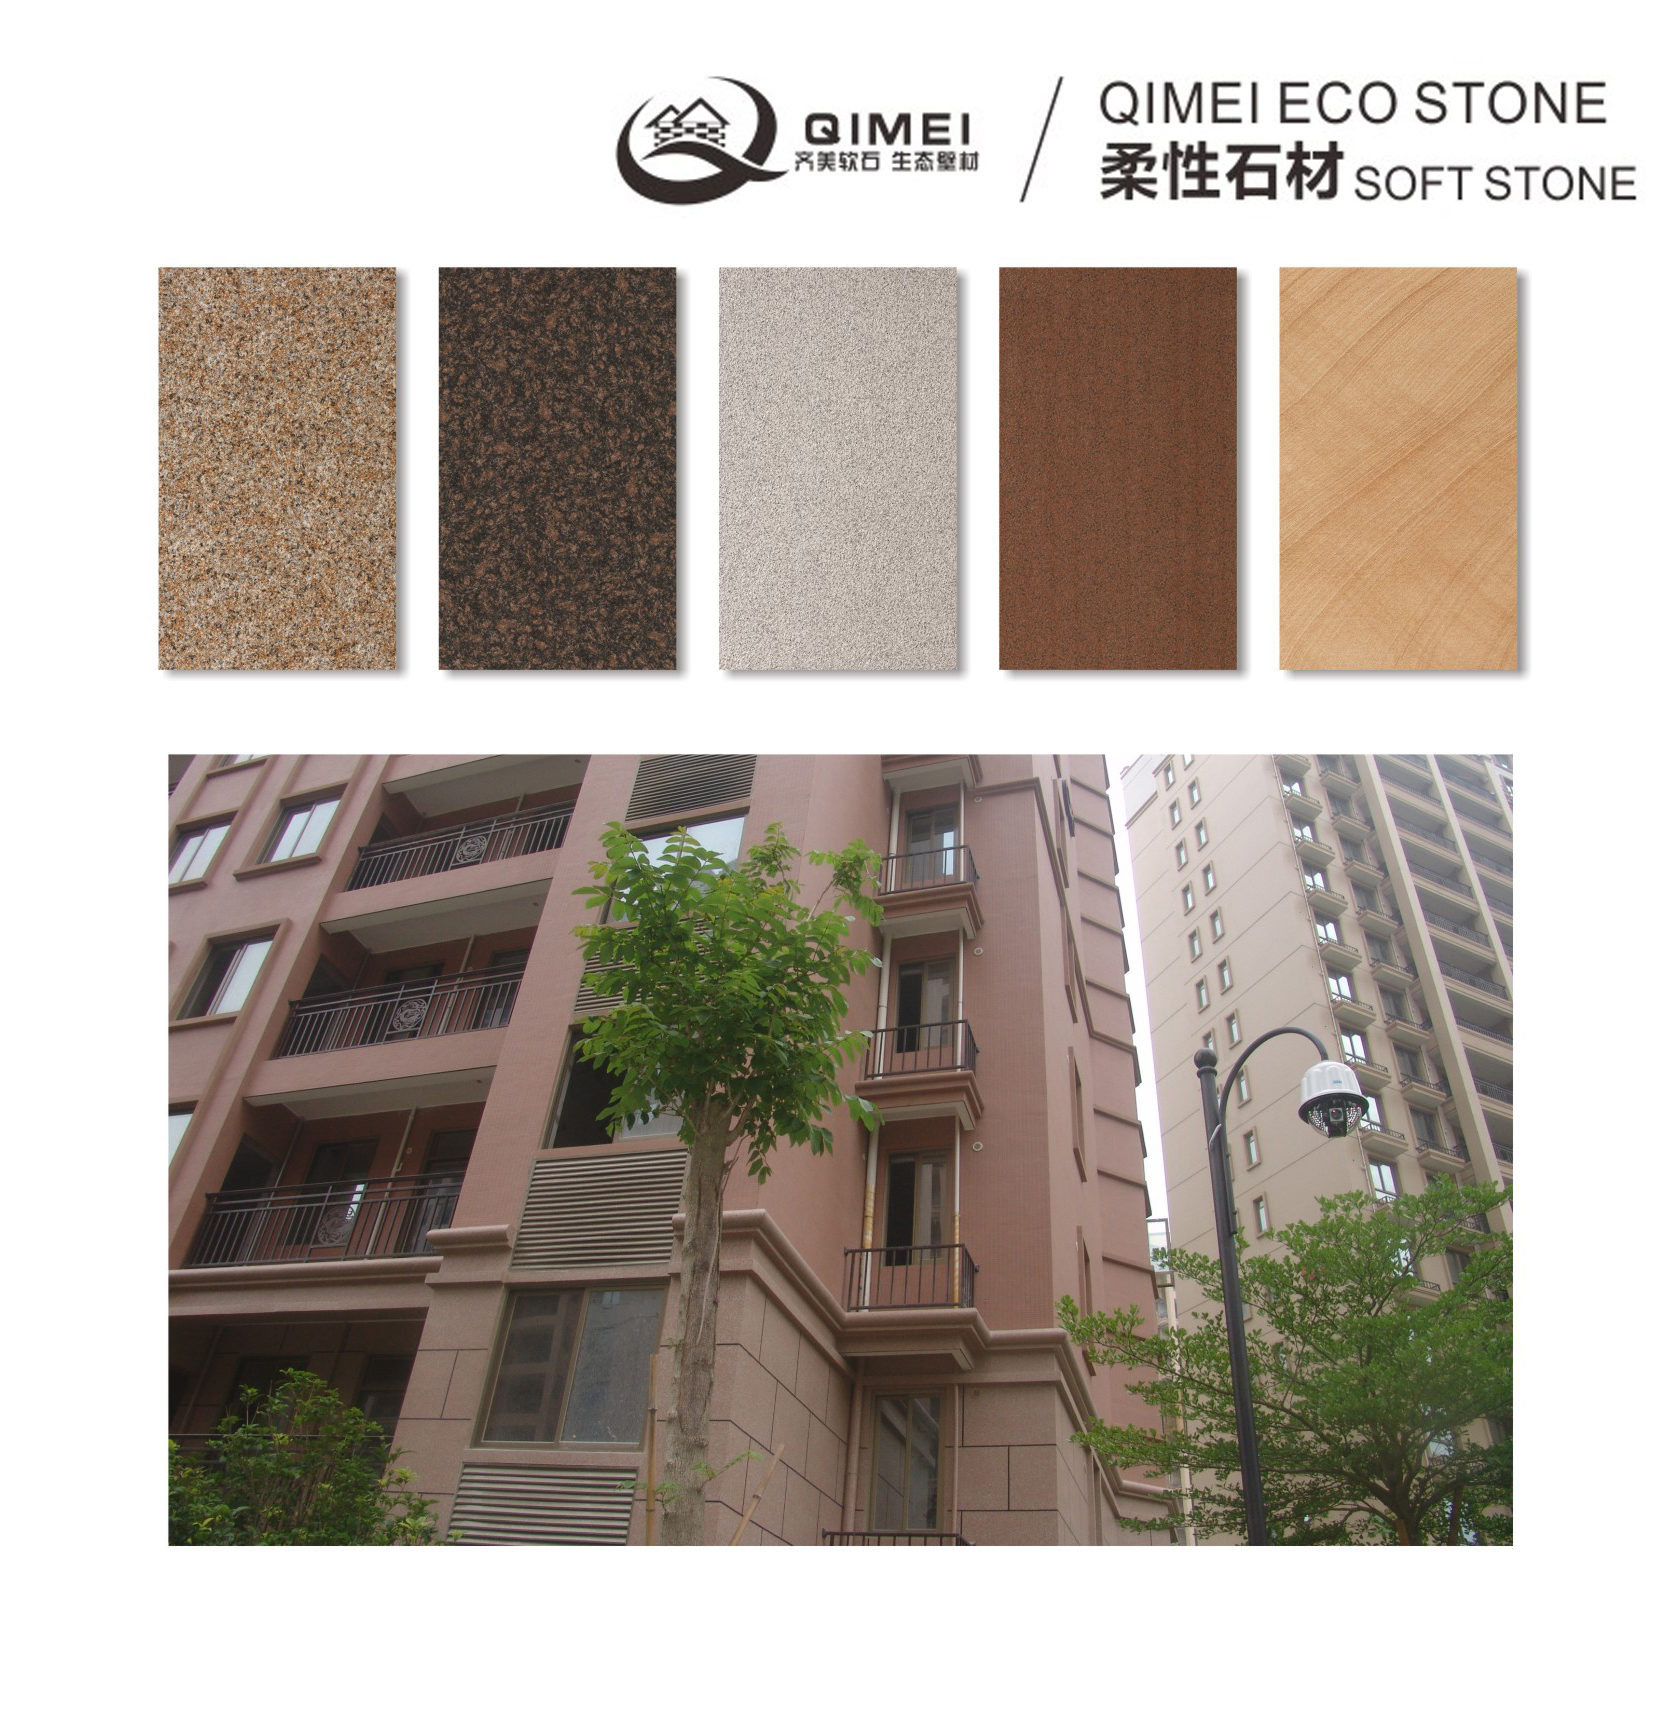 China manufactured customized and personalized soft stone natural texture and touching feeling